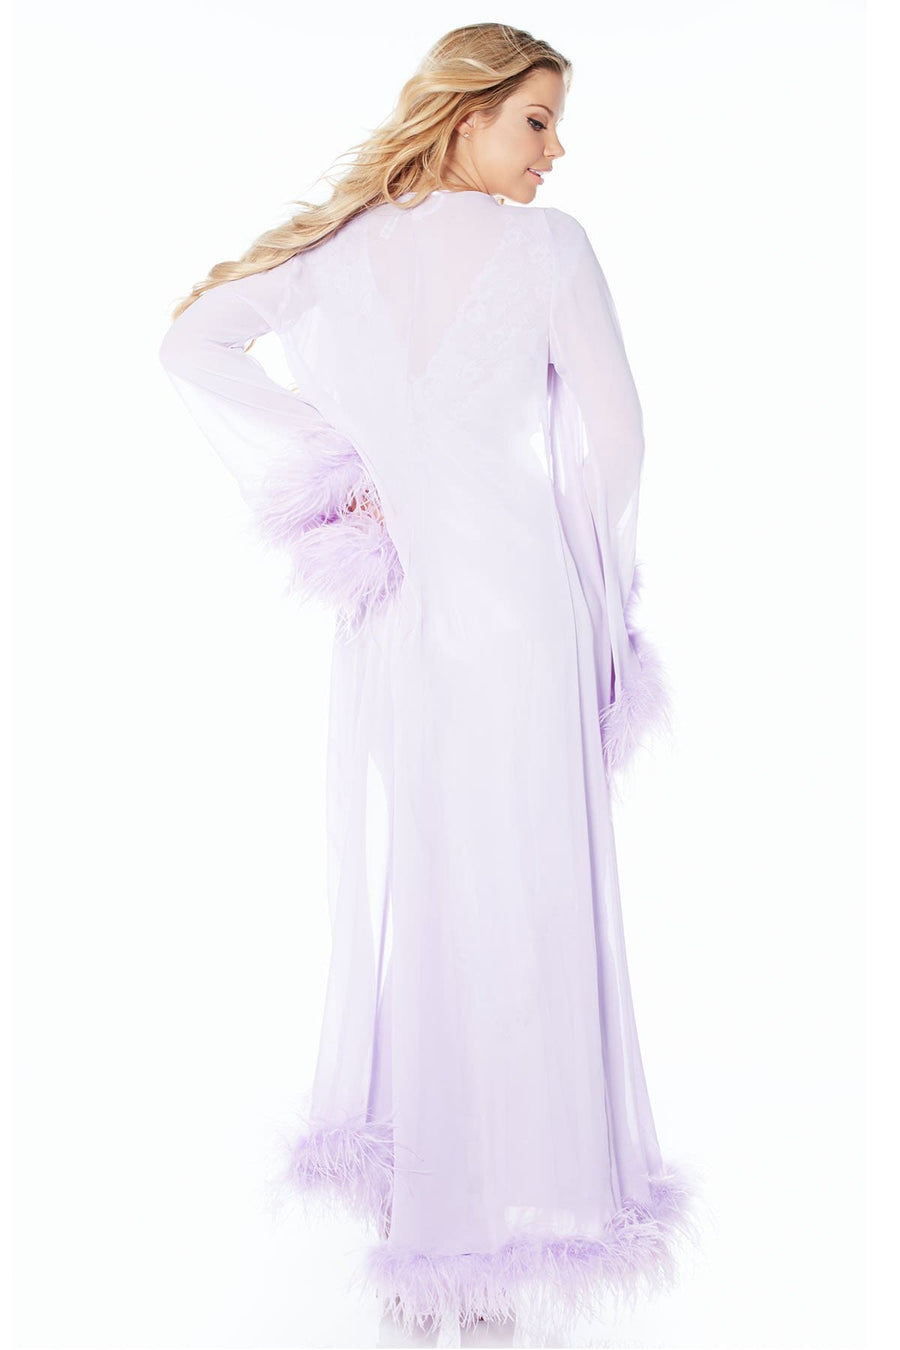 Harlow Ostrich Trim Robe-FINAL SALE - Rhonda Shear